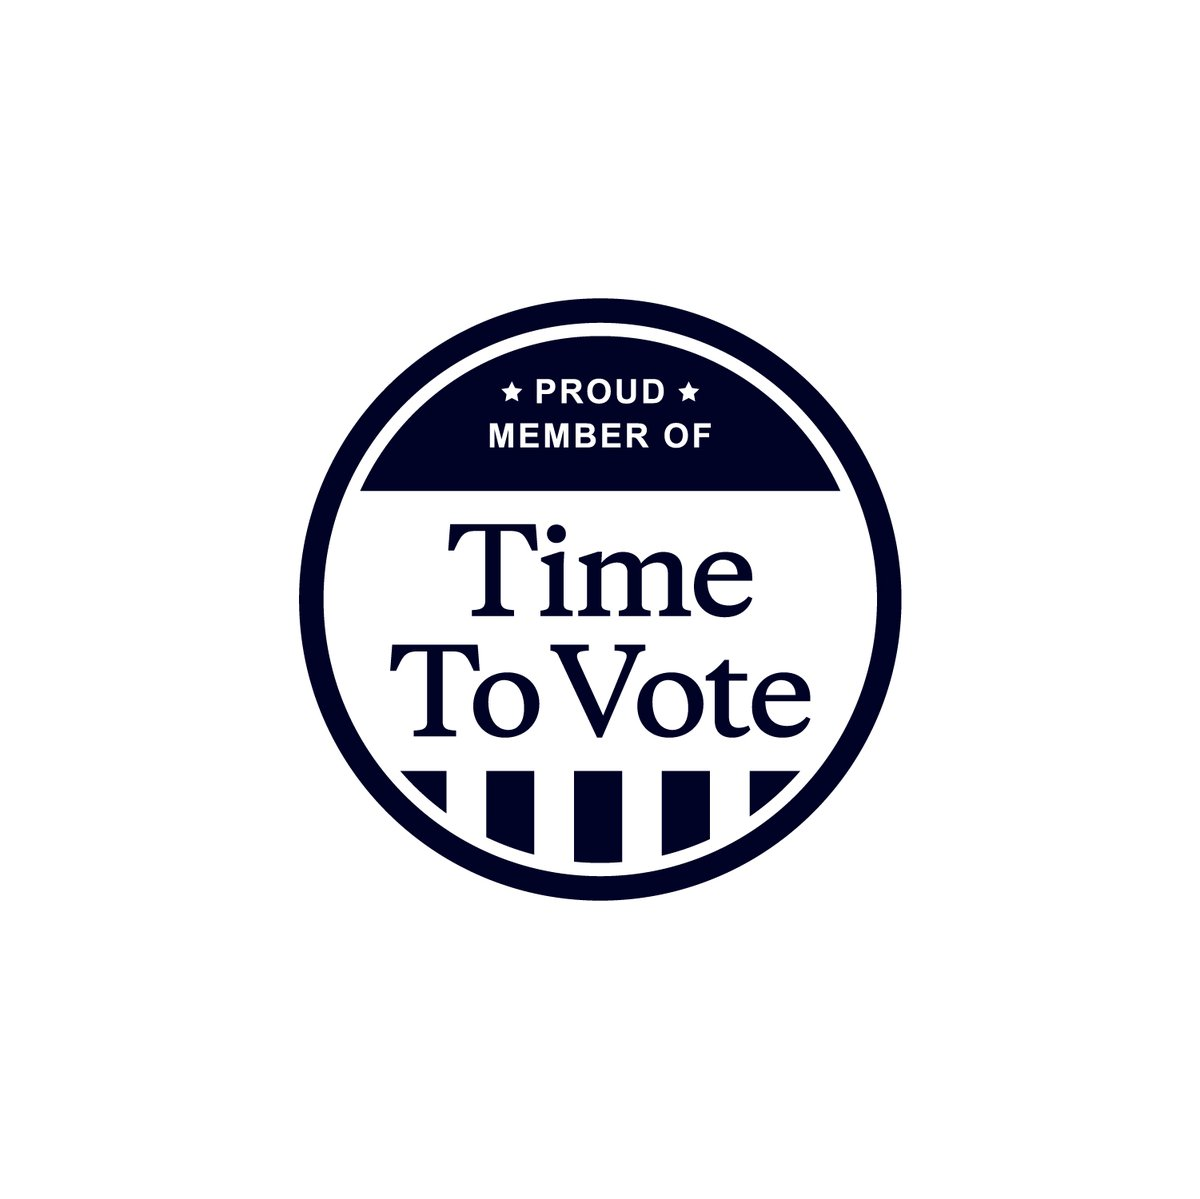 """Today's focus for CONNECT Week is on connecting with our communities. That's why we designated today a """"no meeting day"""" across our U.S. offices to ensure our people feel empowered to take #TimeToVote and volunteer at polling places in their communities if they choose. #cdkconnect https://t.co/MFnSNNOcIa"""